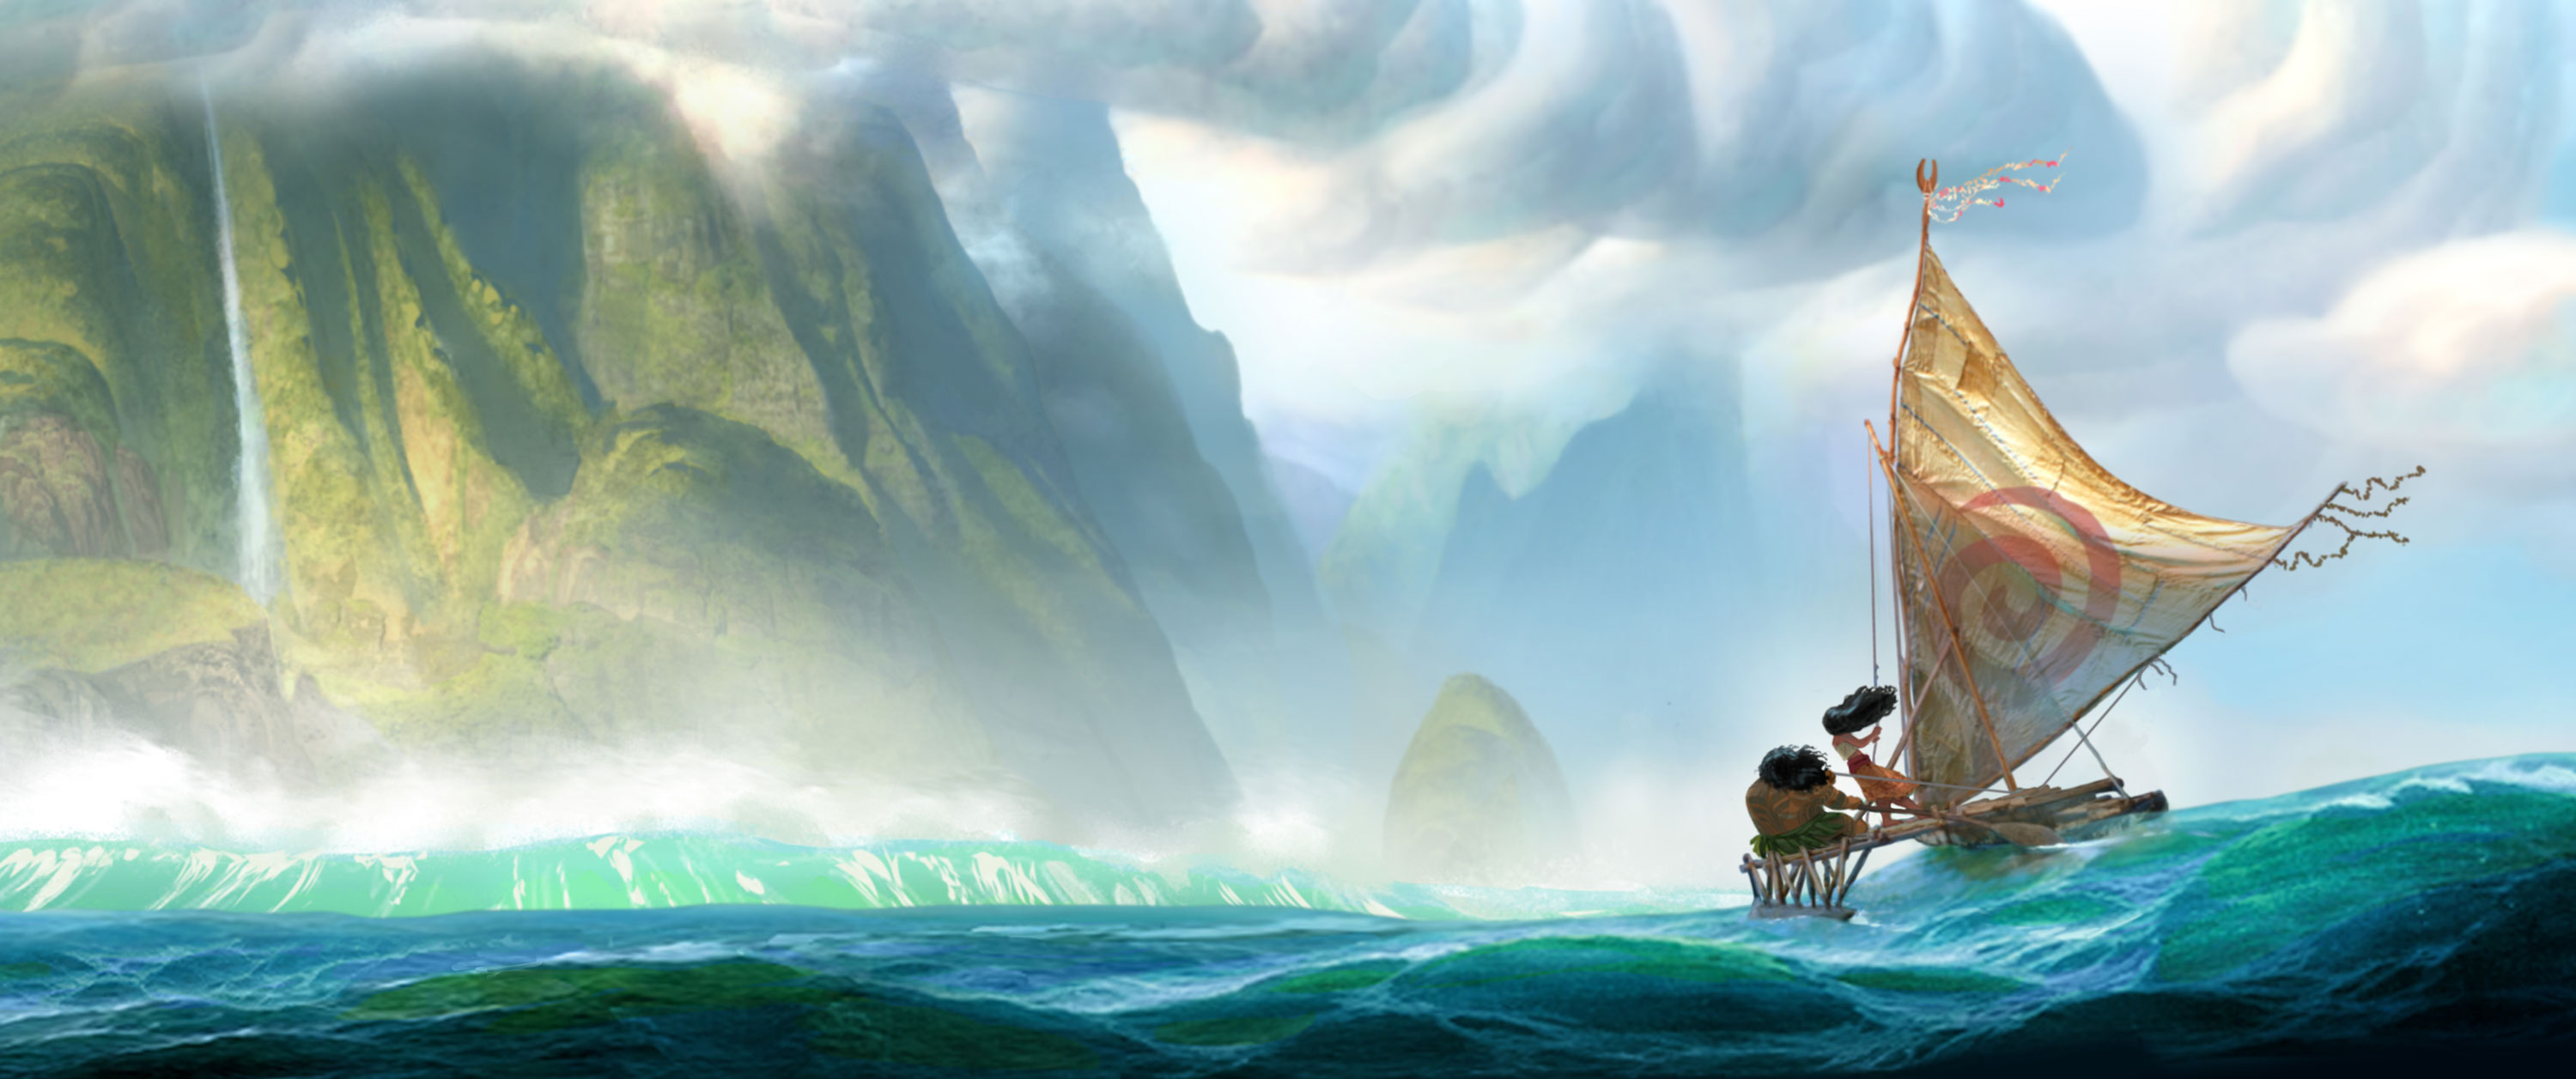 disney artwork vaiana legende bout du monde moana